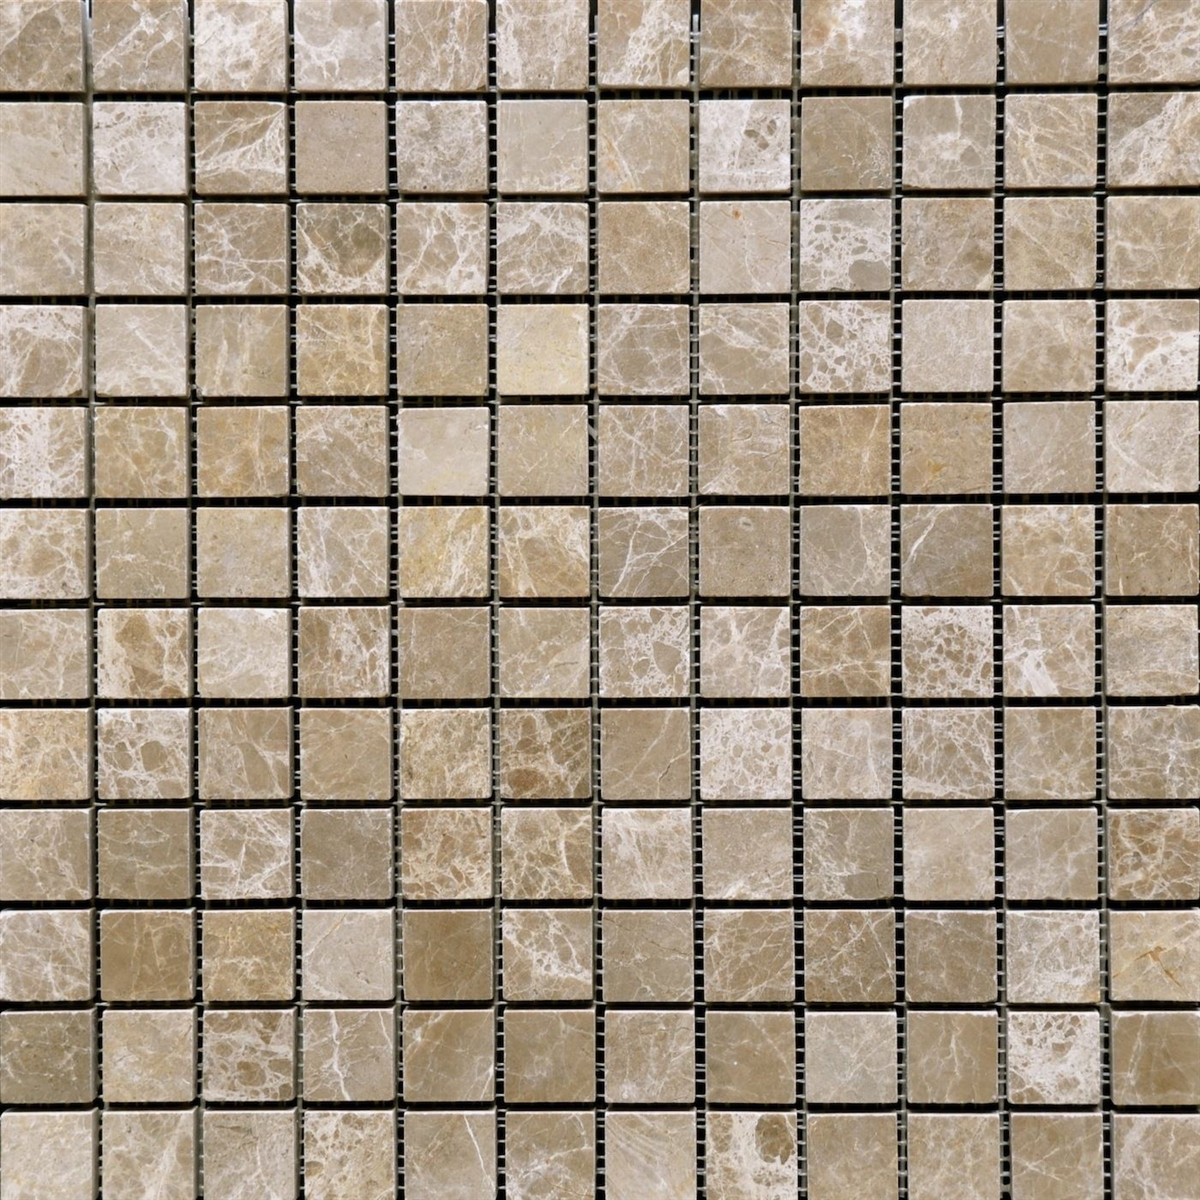 Emperador Light Mosaic 1x1 Tumbled Marble Tile